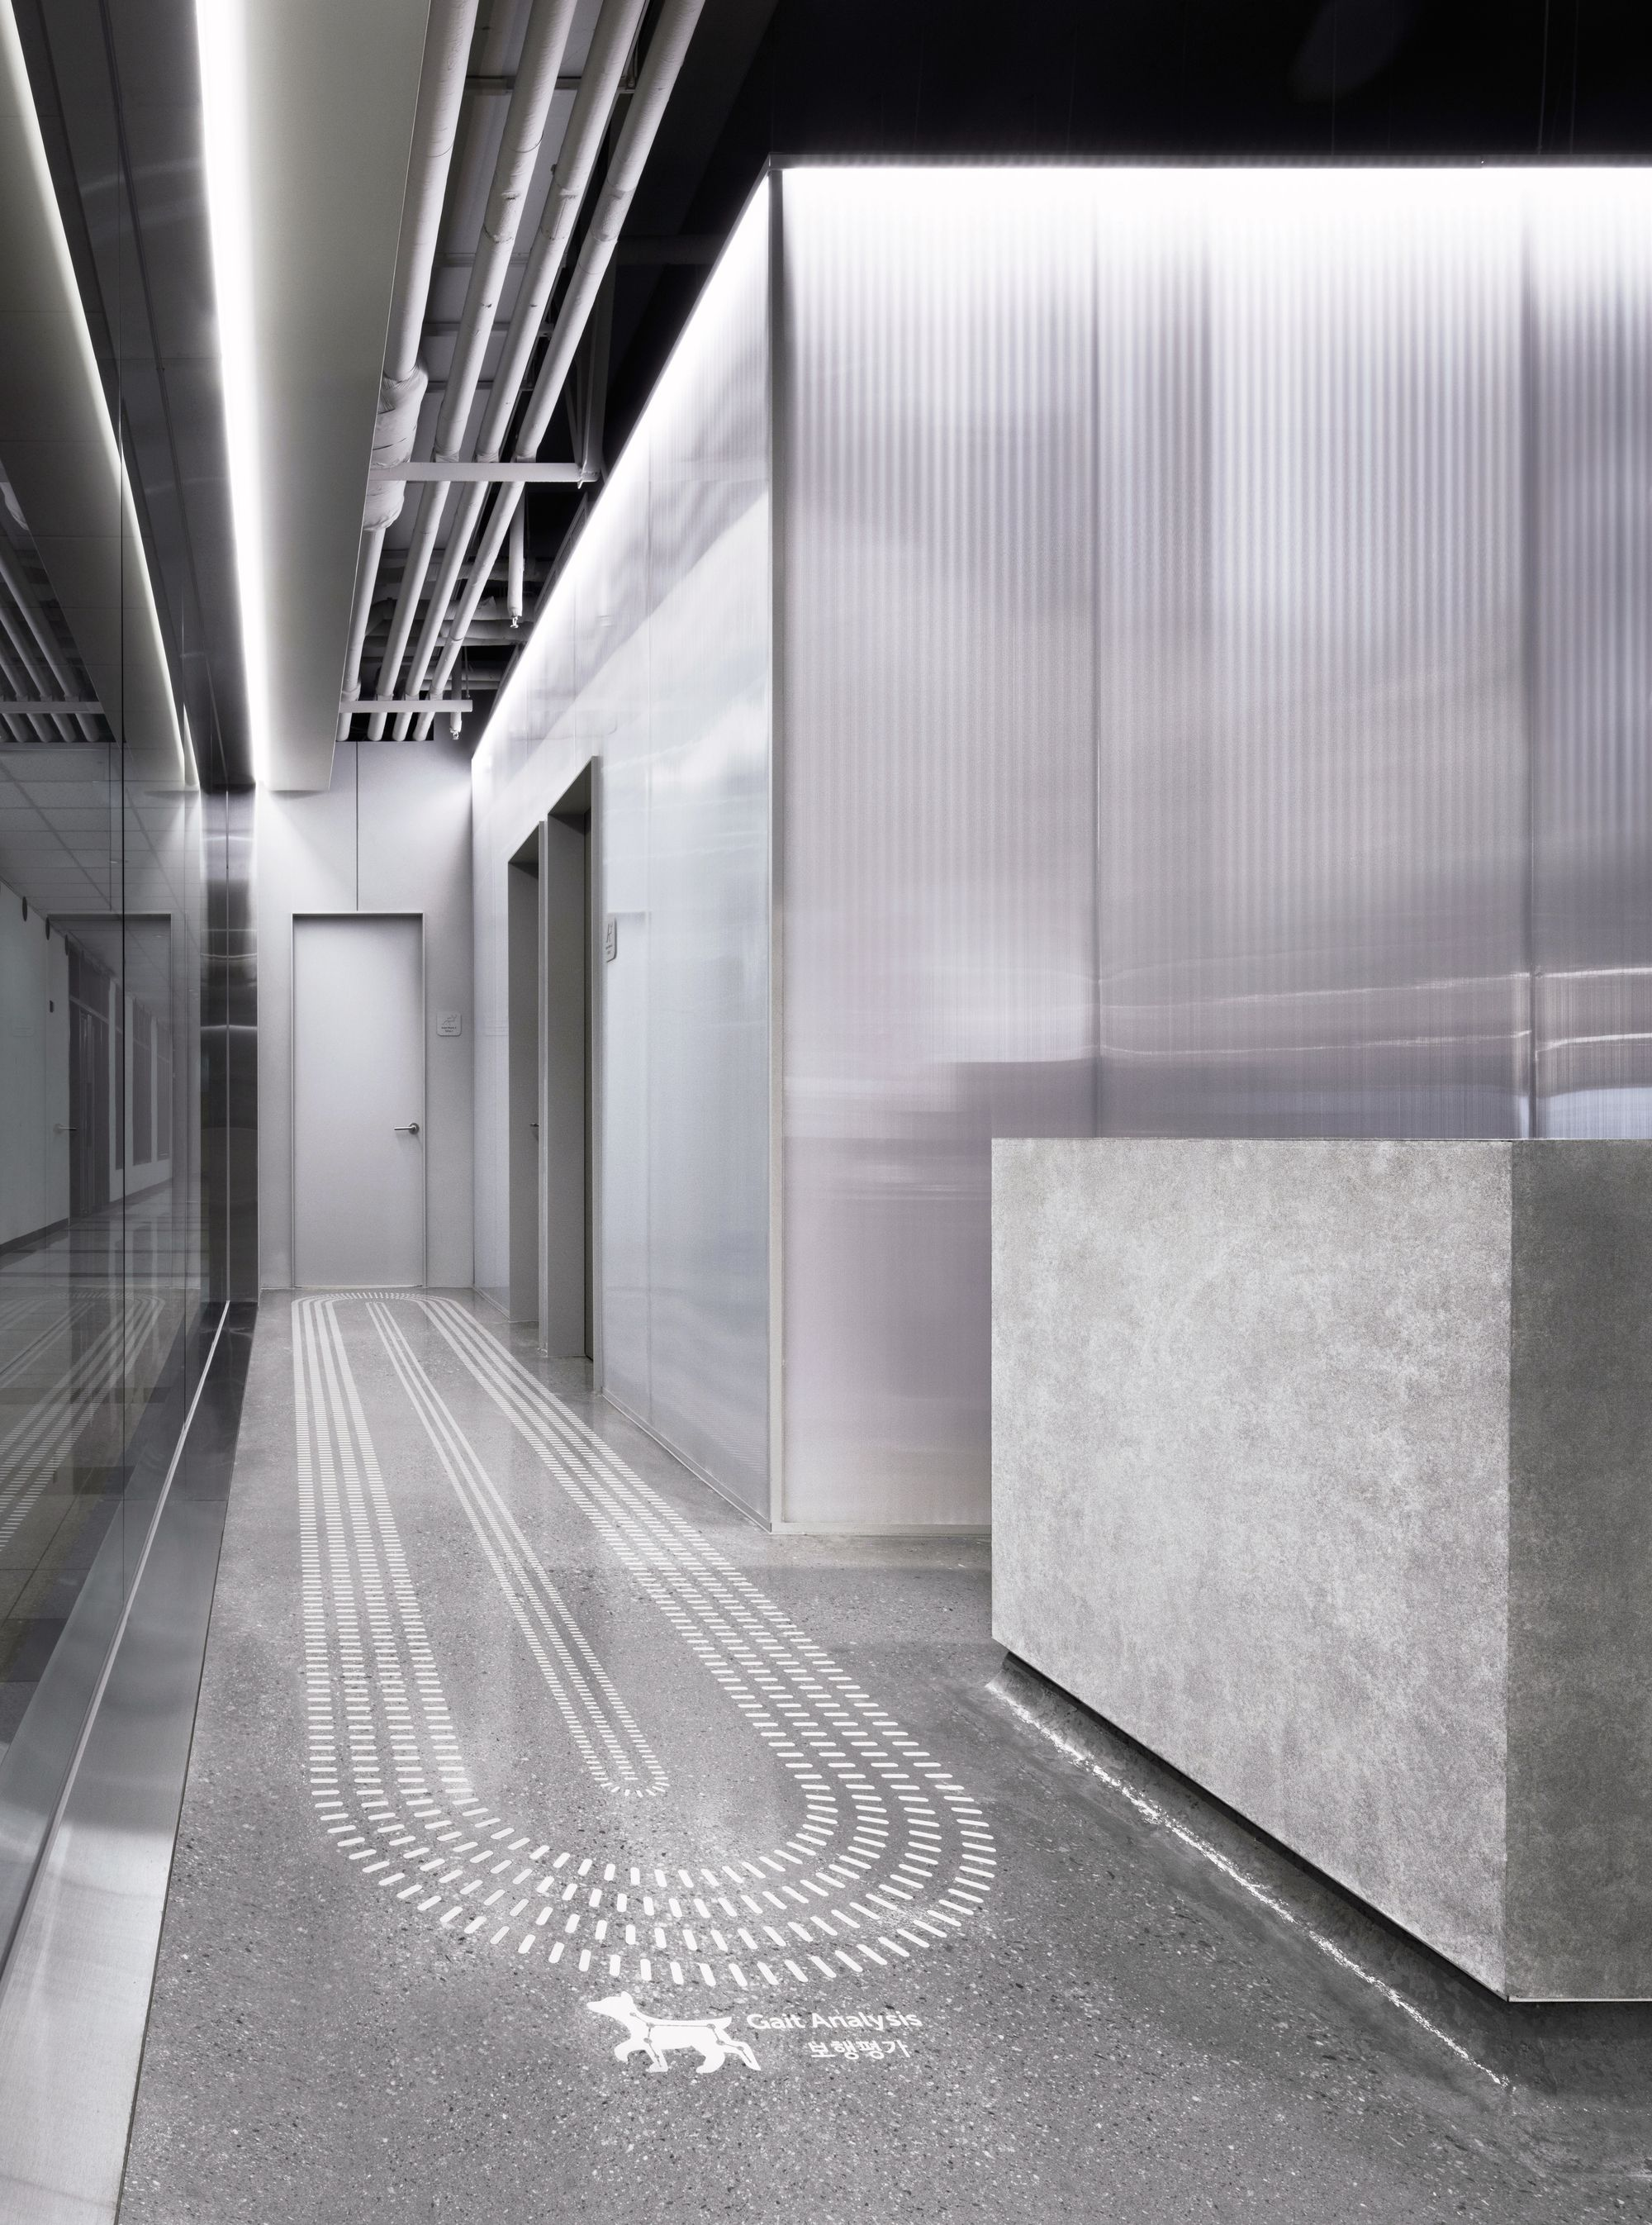 Image 2 of 21 from gallery of OASIS Veterinary / Betwin Space Design. Photograph by Yong-joon Choi